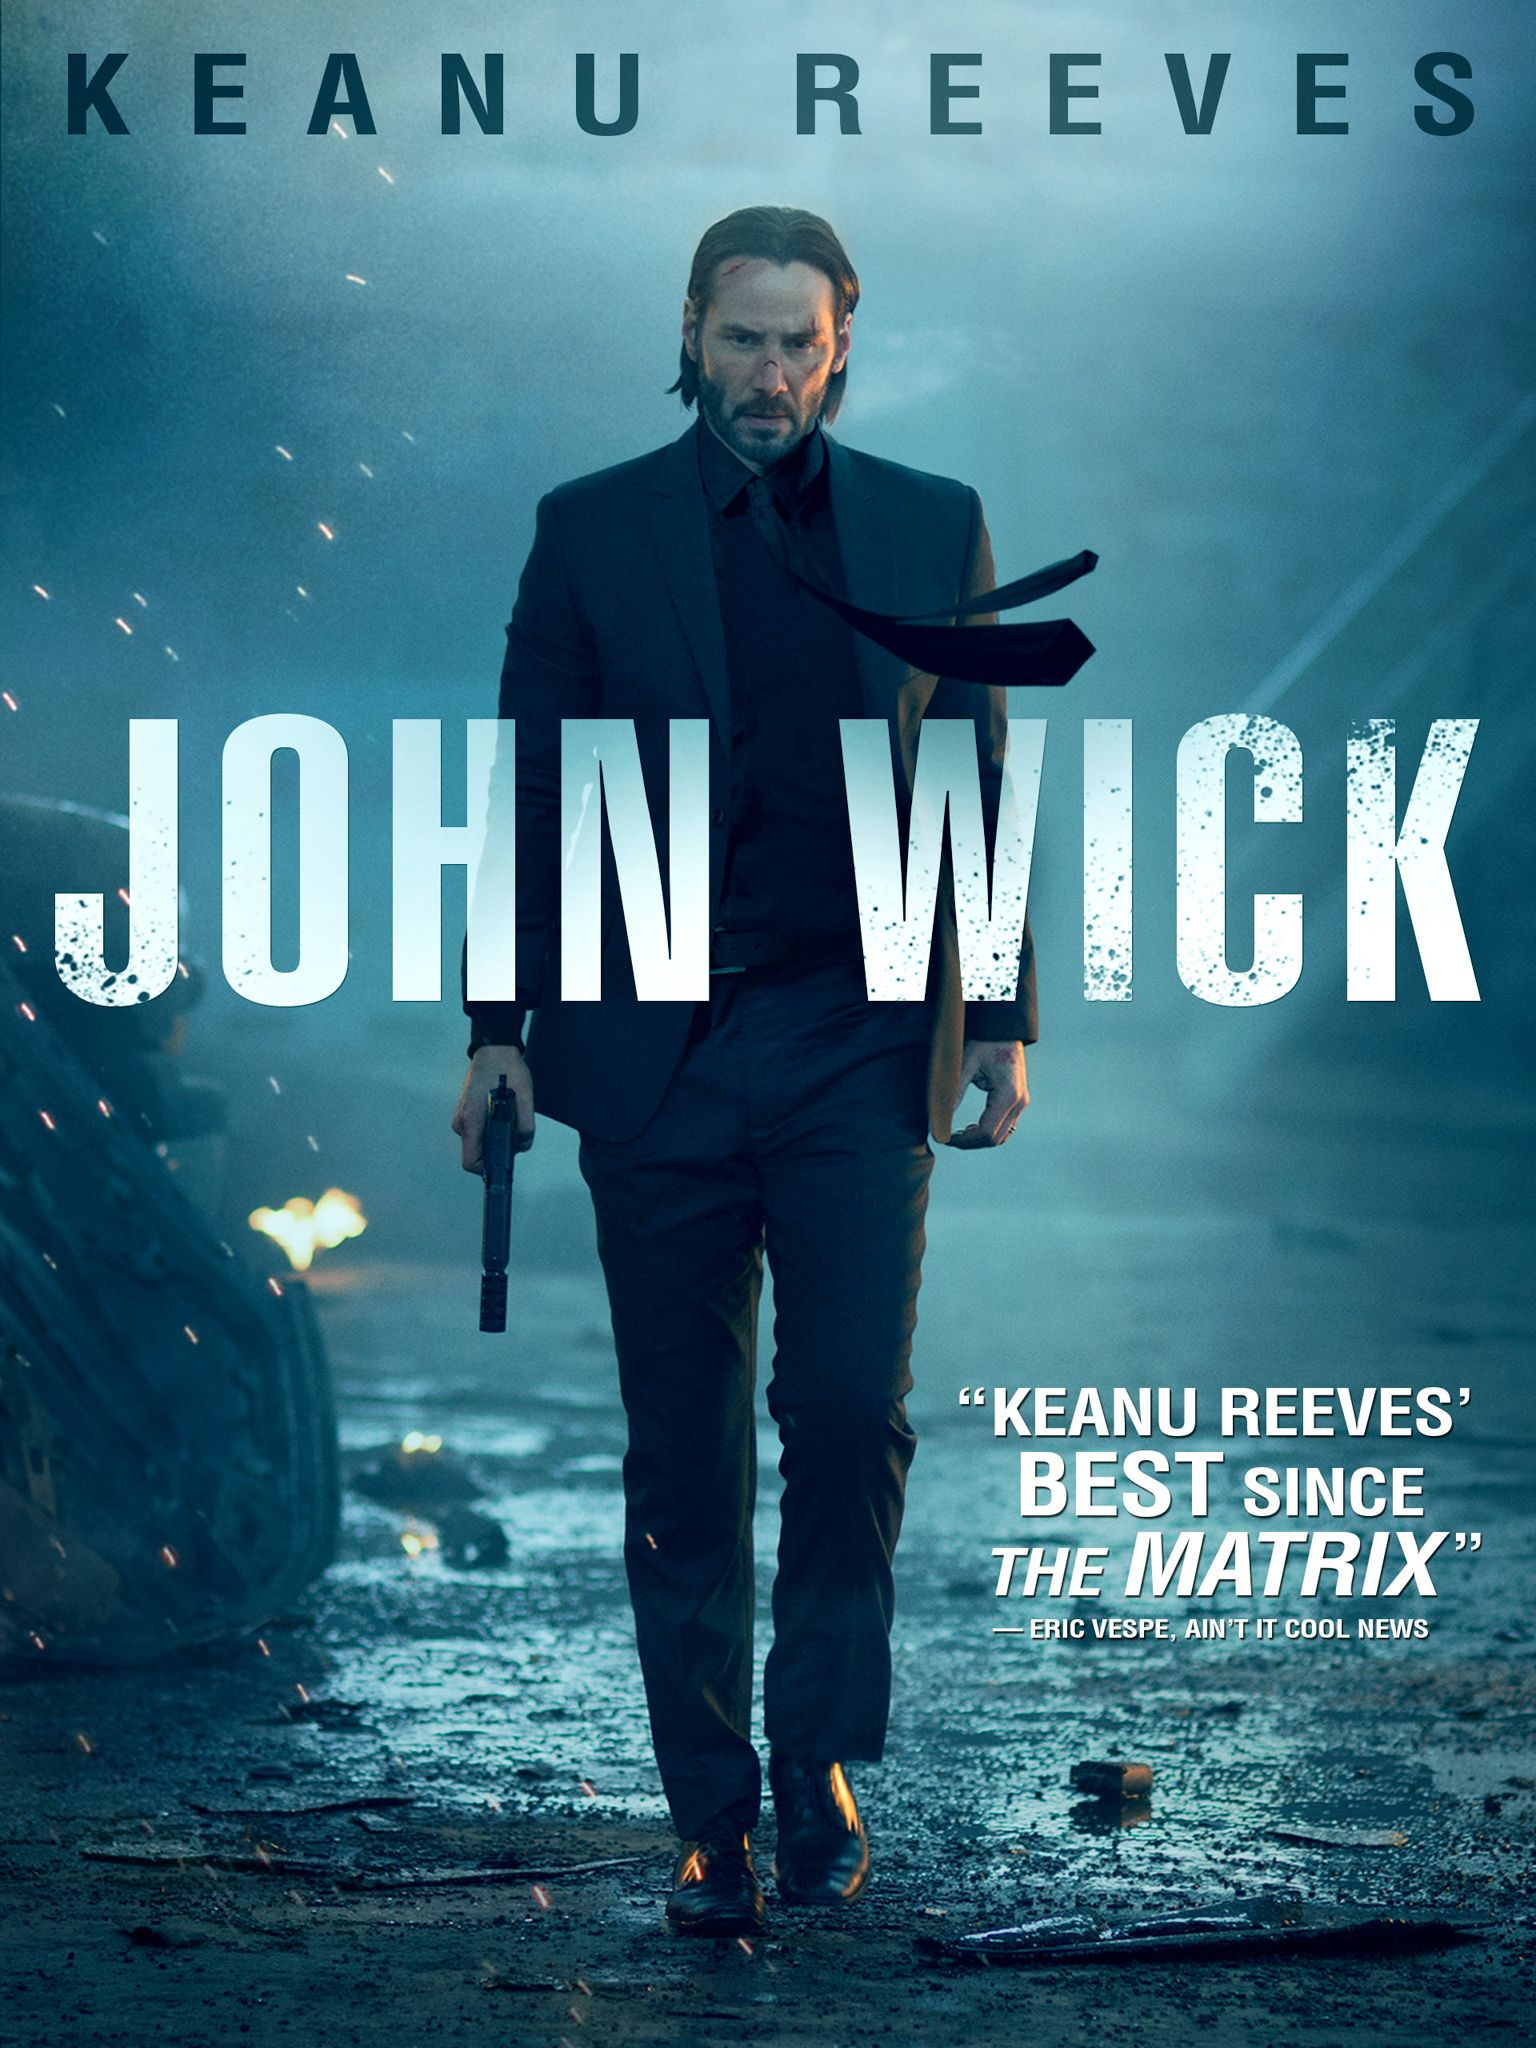 John Wick (2014) - Directed by: Chad StahelskiStarring: Keanu Reeves, Michael Nyqvist, Alfie Allen, Bridget Moynahan, Adrianne Palicki, Willem Dafoe, Ian McShane, John Leguizamo, Dean WintersRated: R for Strong Bloody Violence Throughout, Language and Brief Drug UseRunning Time: 1 h 41 mTMM Score: 4 stars out of 5STRENGTHS: Action, WorldbuildingWEAKNESSES: Some Acting